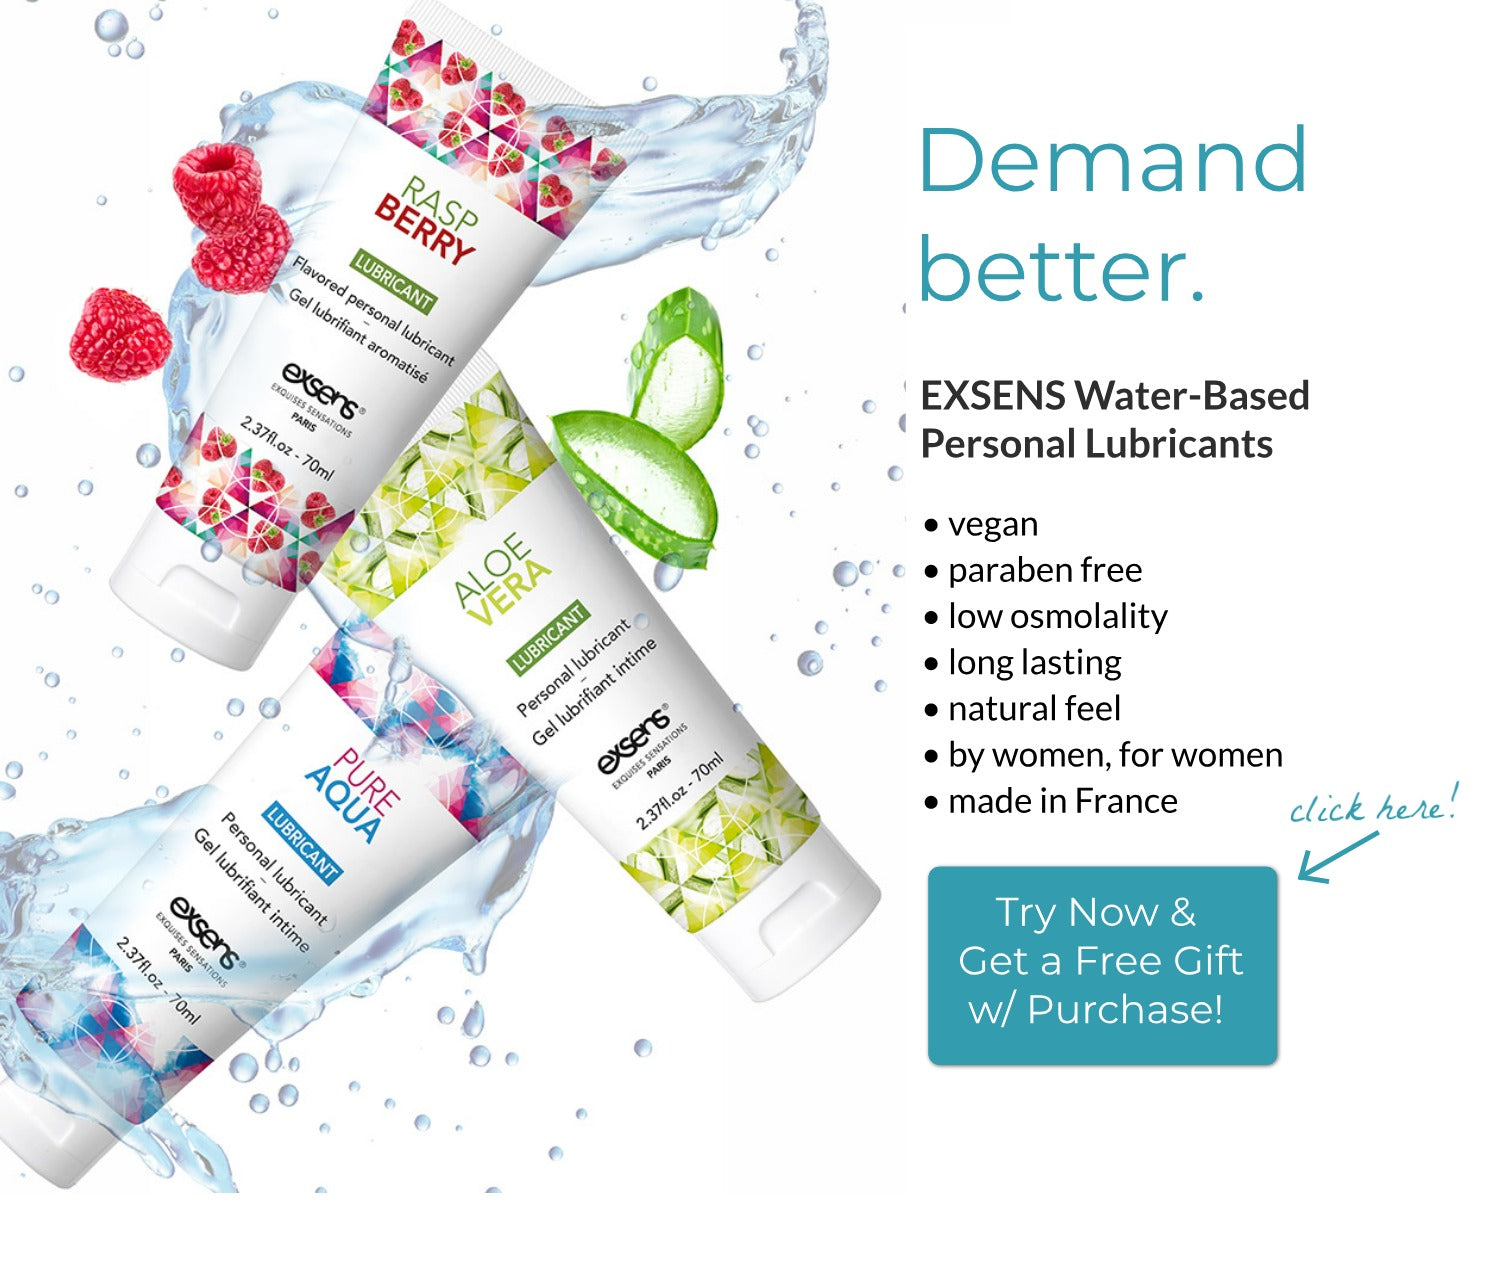 Vegan Paraben Free Lube from EXSENS Free Gift With Purchase